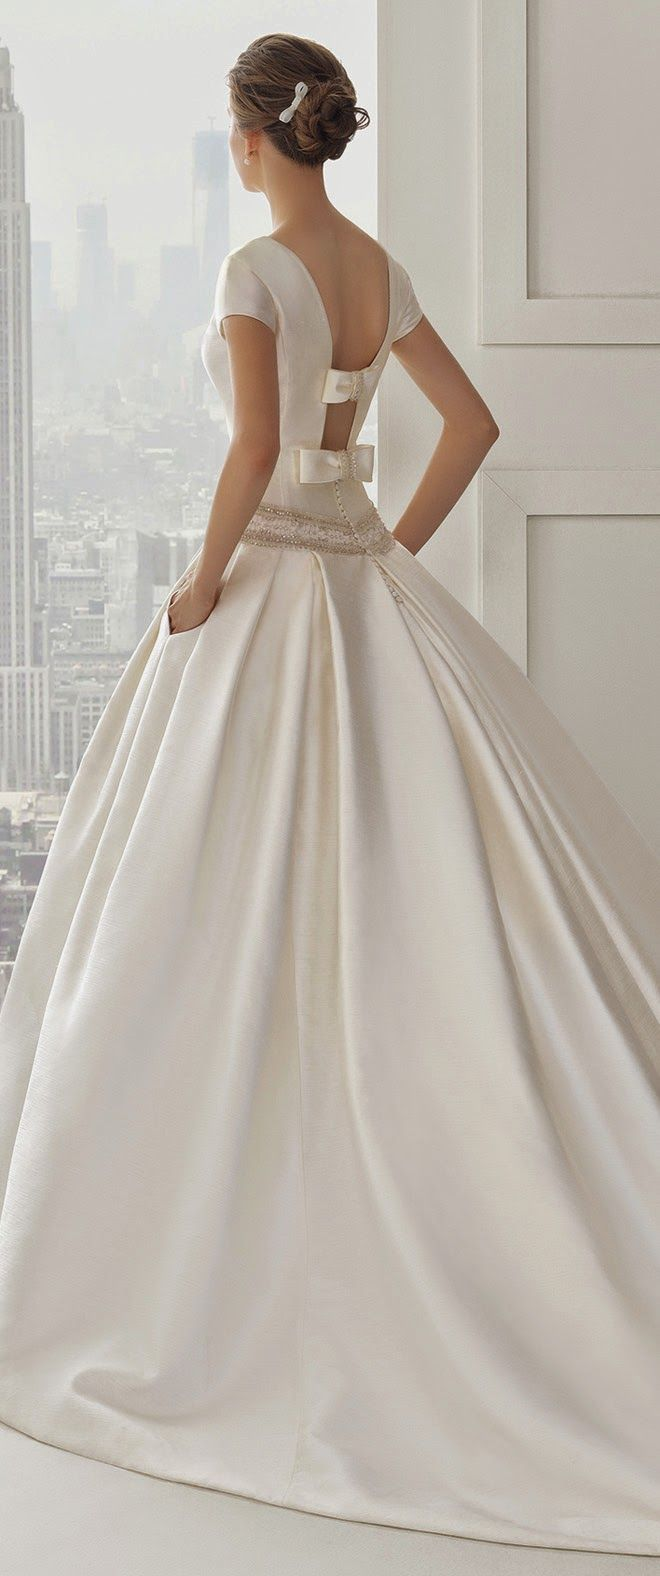 Rosa Clara 2015 Bridal Collection | bellethemagazine.com